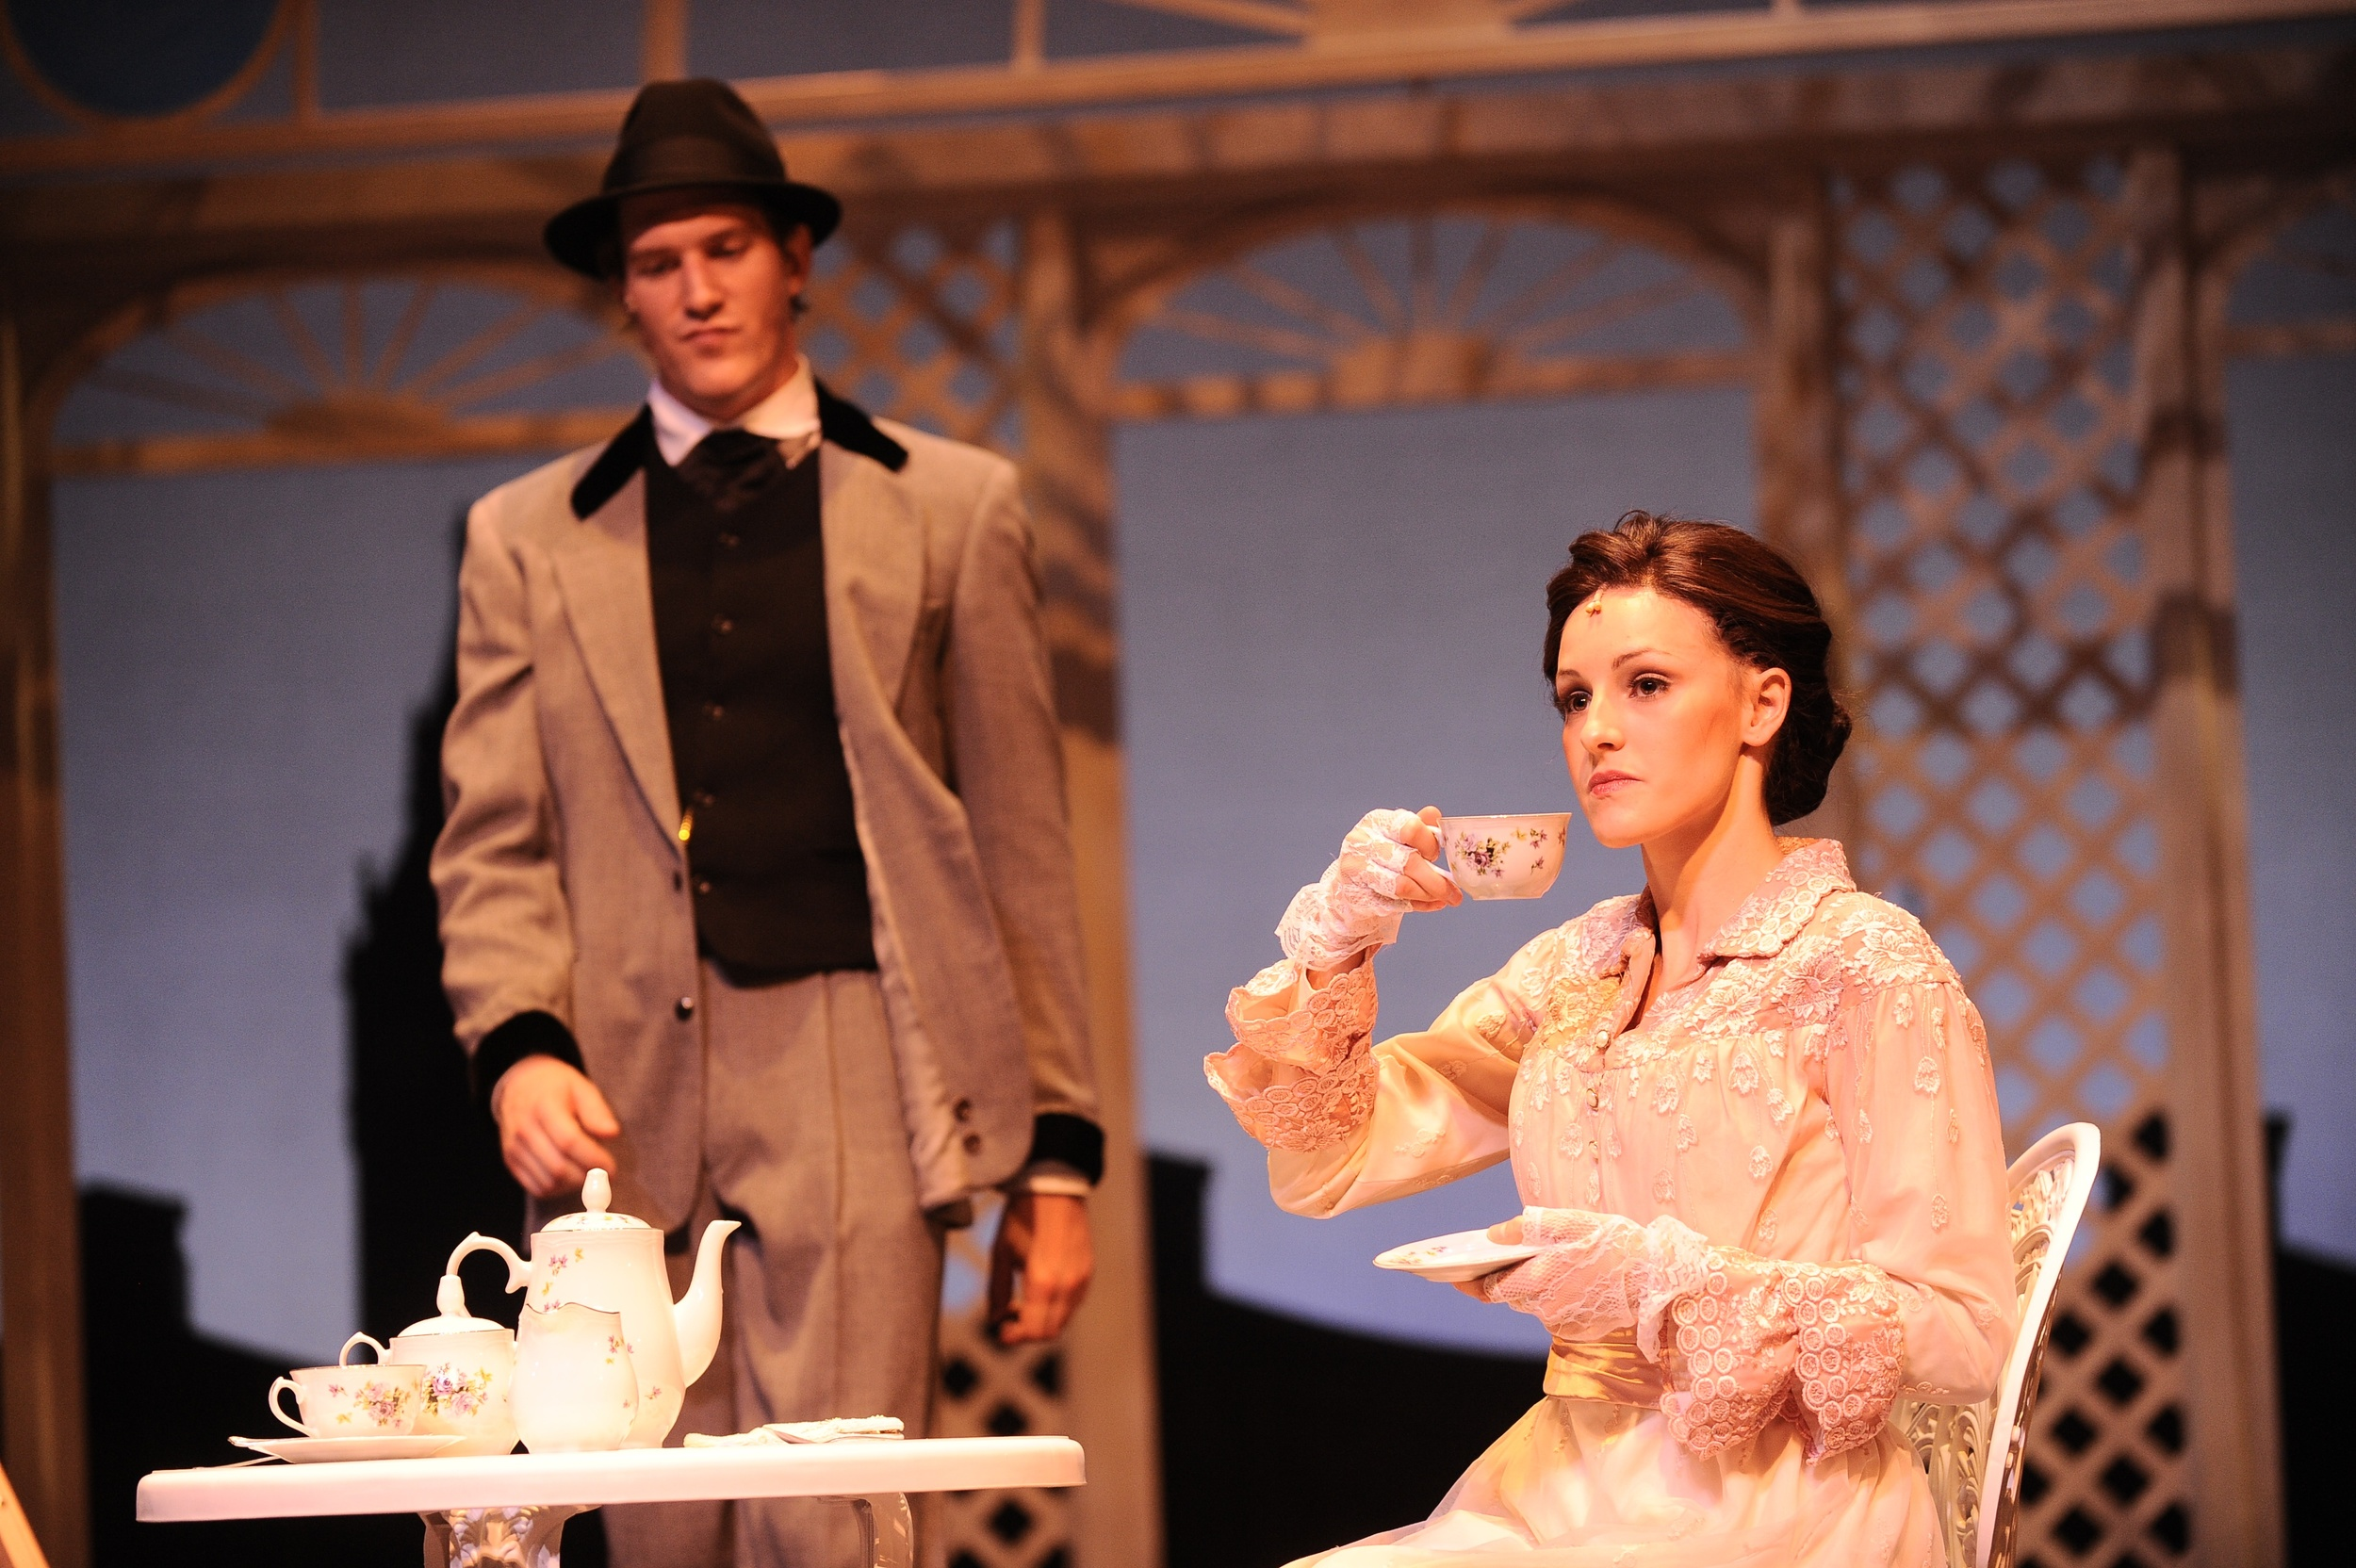 as-eliza-doolittle-in-my-fair-lady-with-nathan-hosner_6960982865_o.jpg